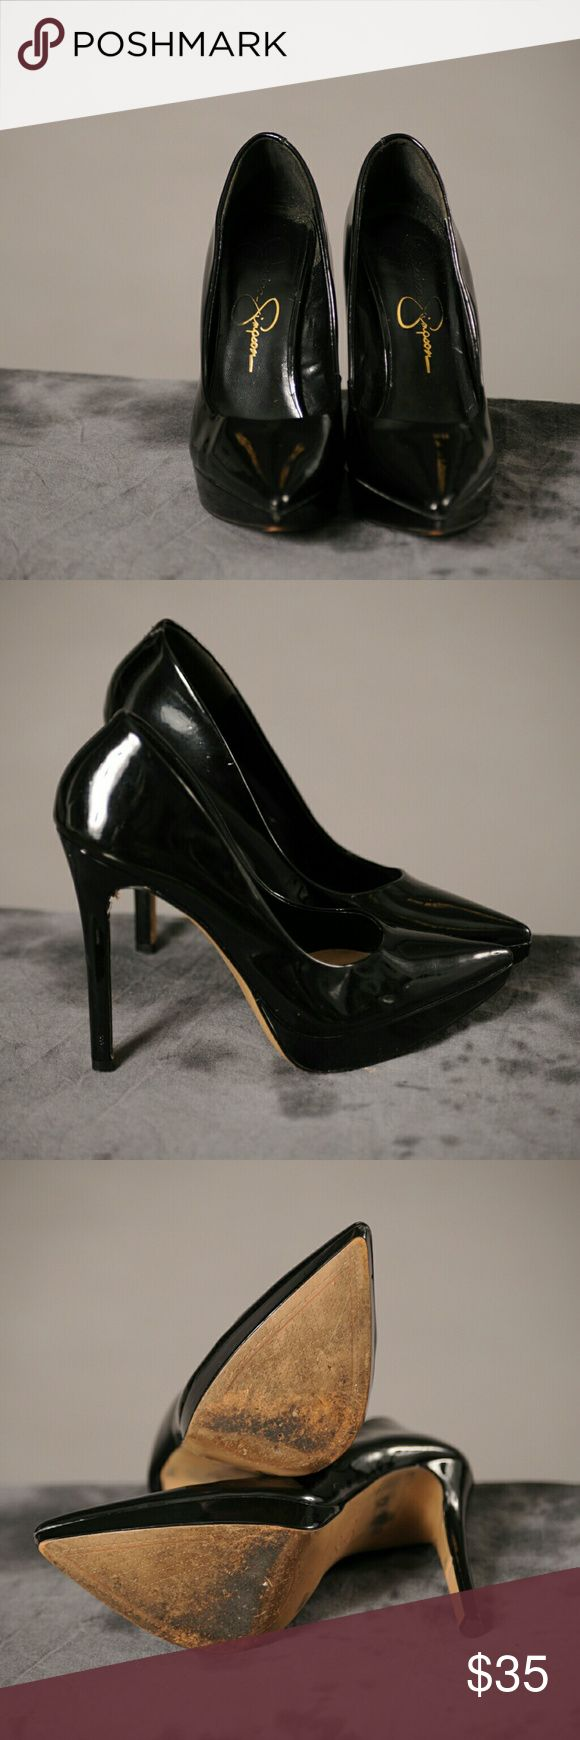 Black pumps Leather stilletto heels with minimal wear Jessica Simpson Shoes Heels